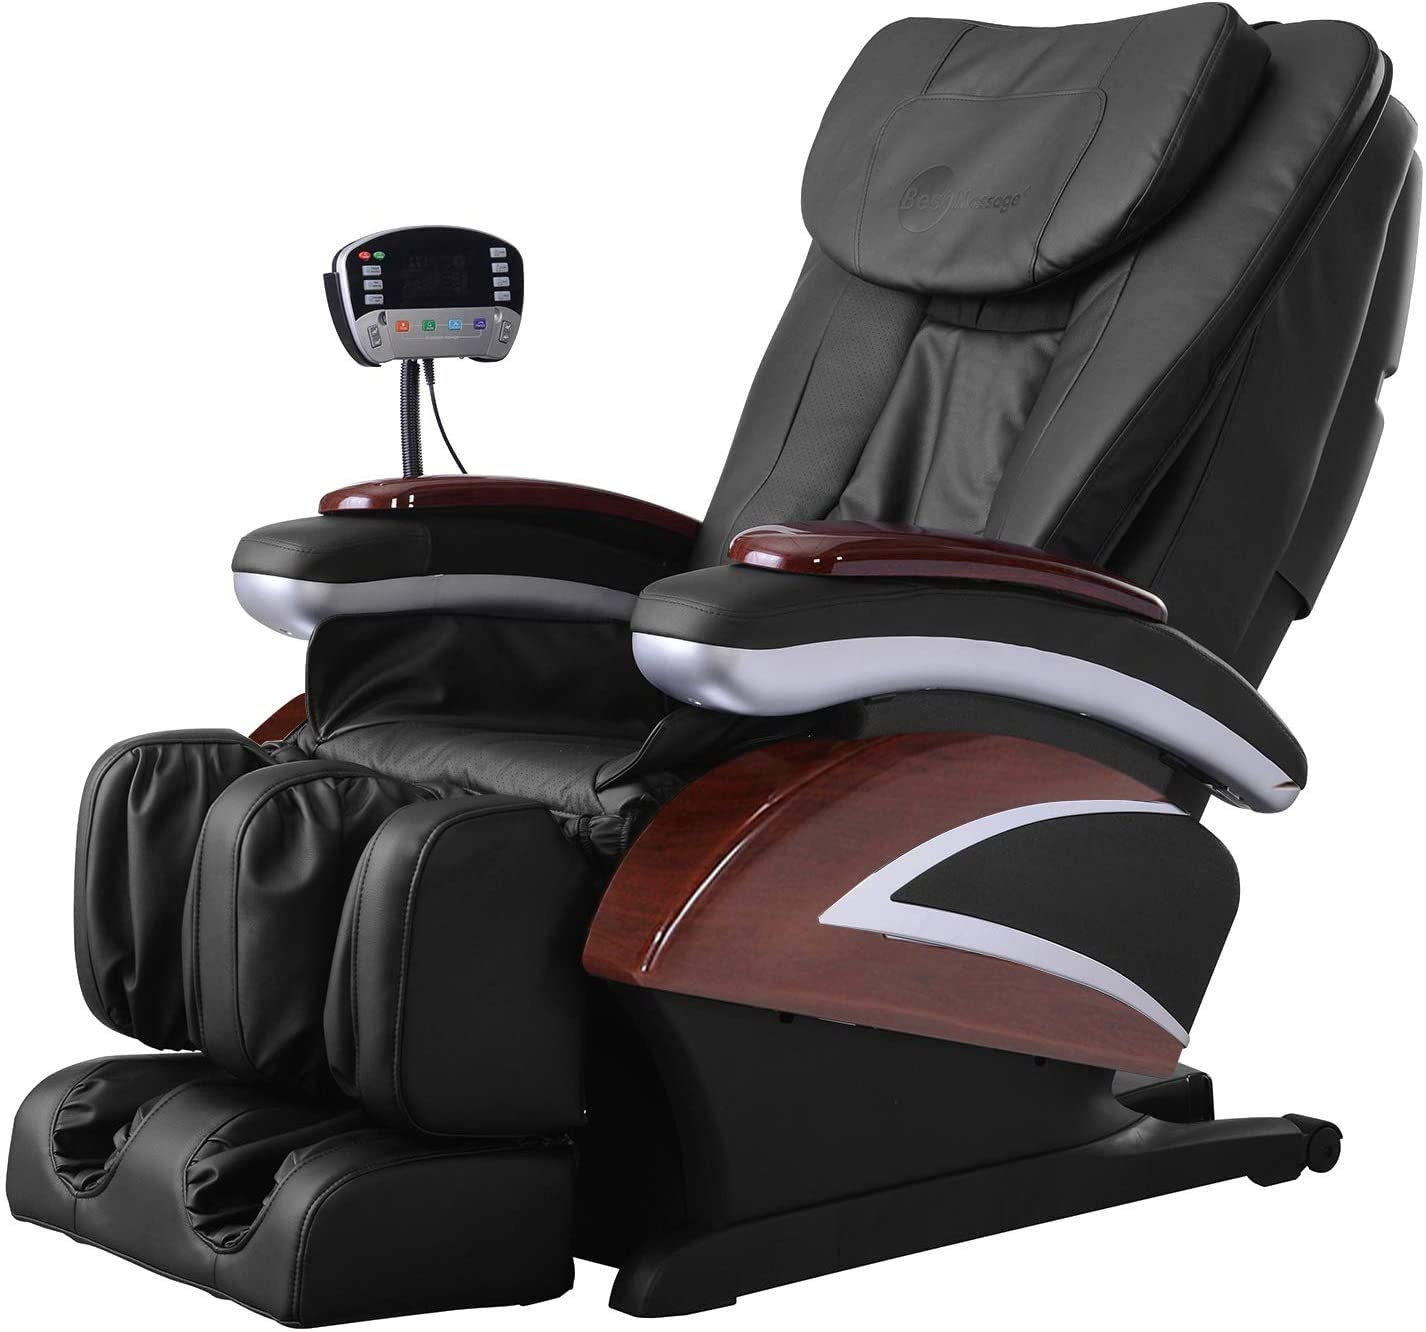 21 Best Living Room Chair for Back Pain Sufferers |2021 Reviews